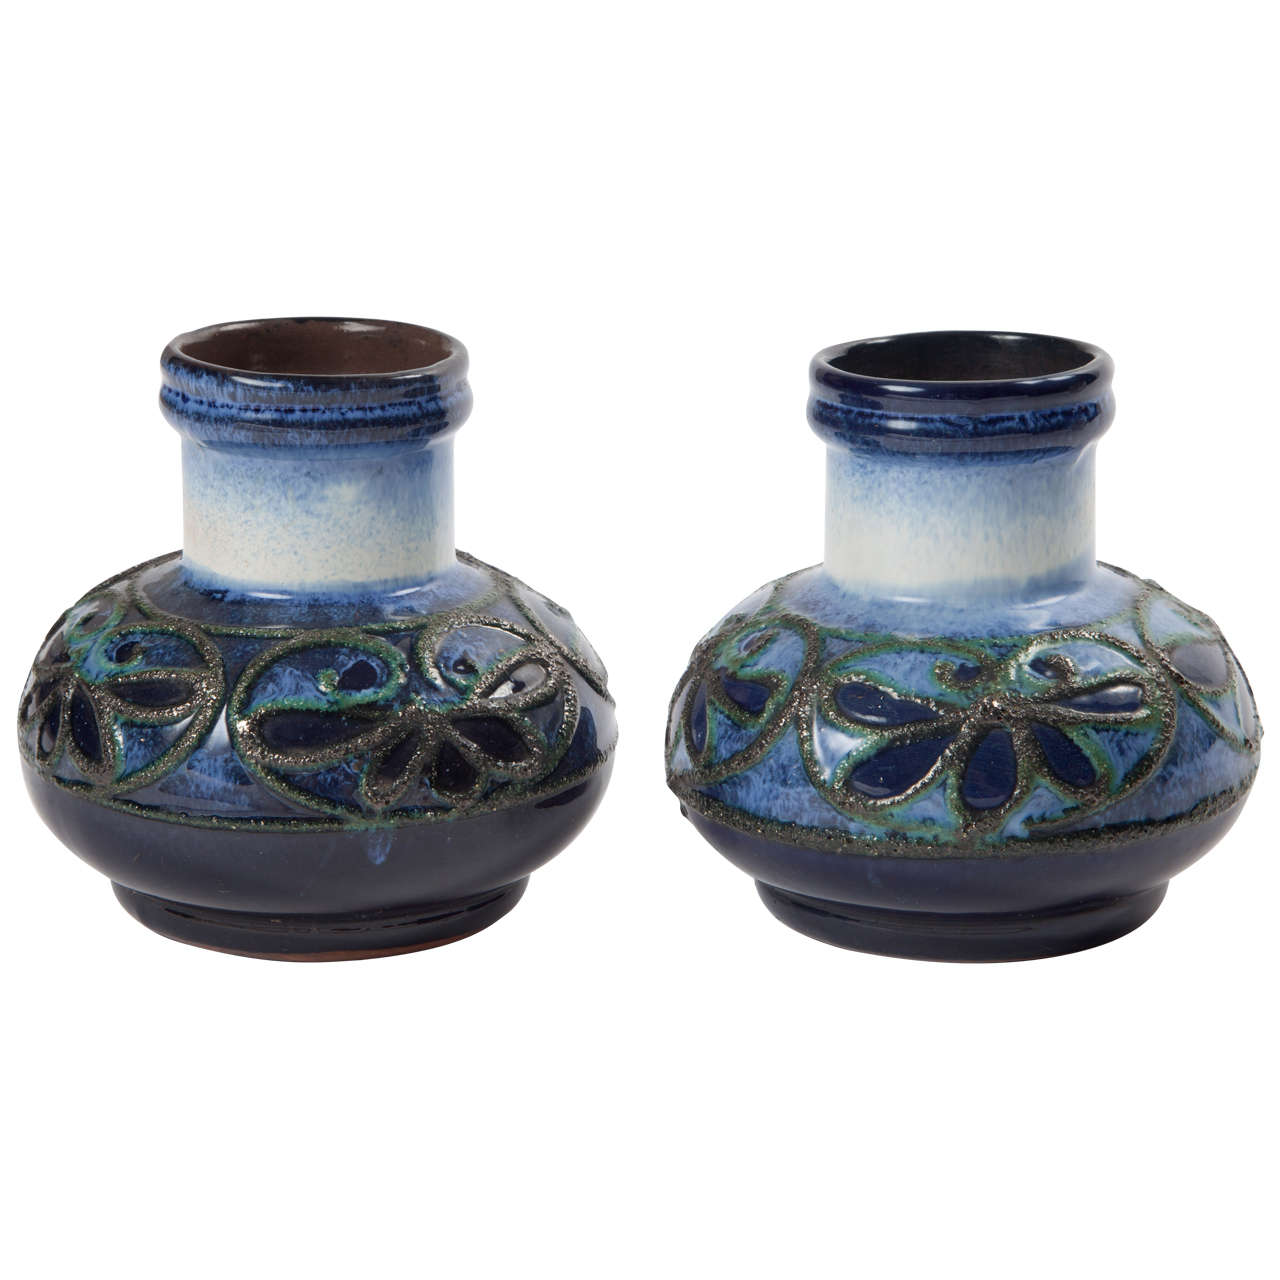 Pair of Fat Lava Glaze Strehla Vases 1